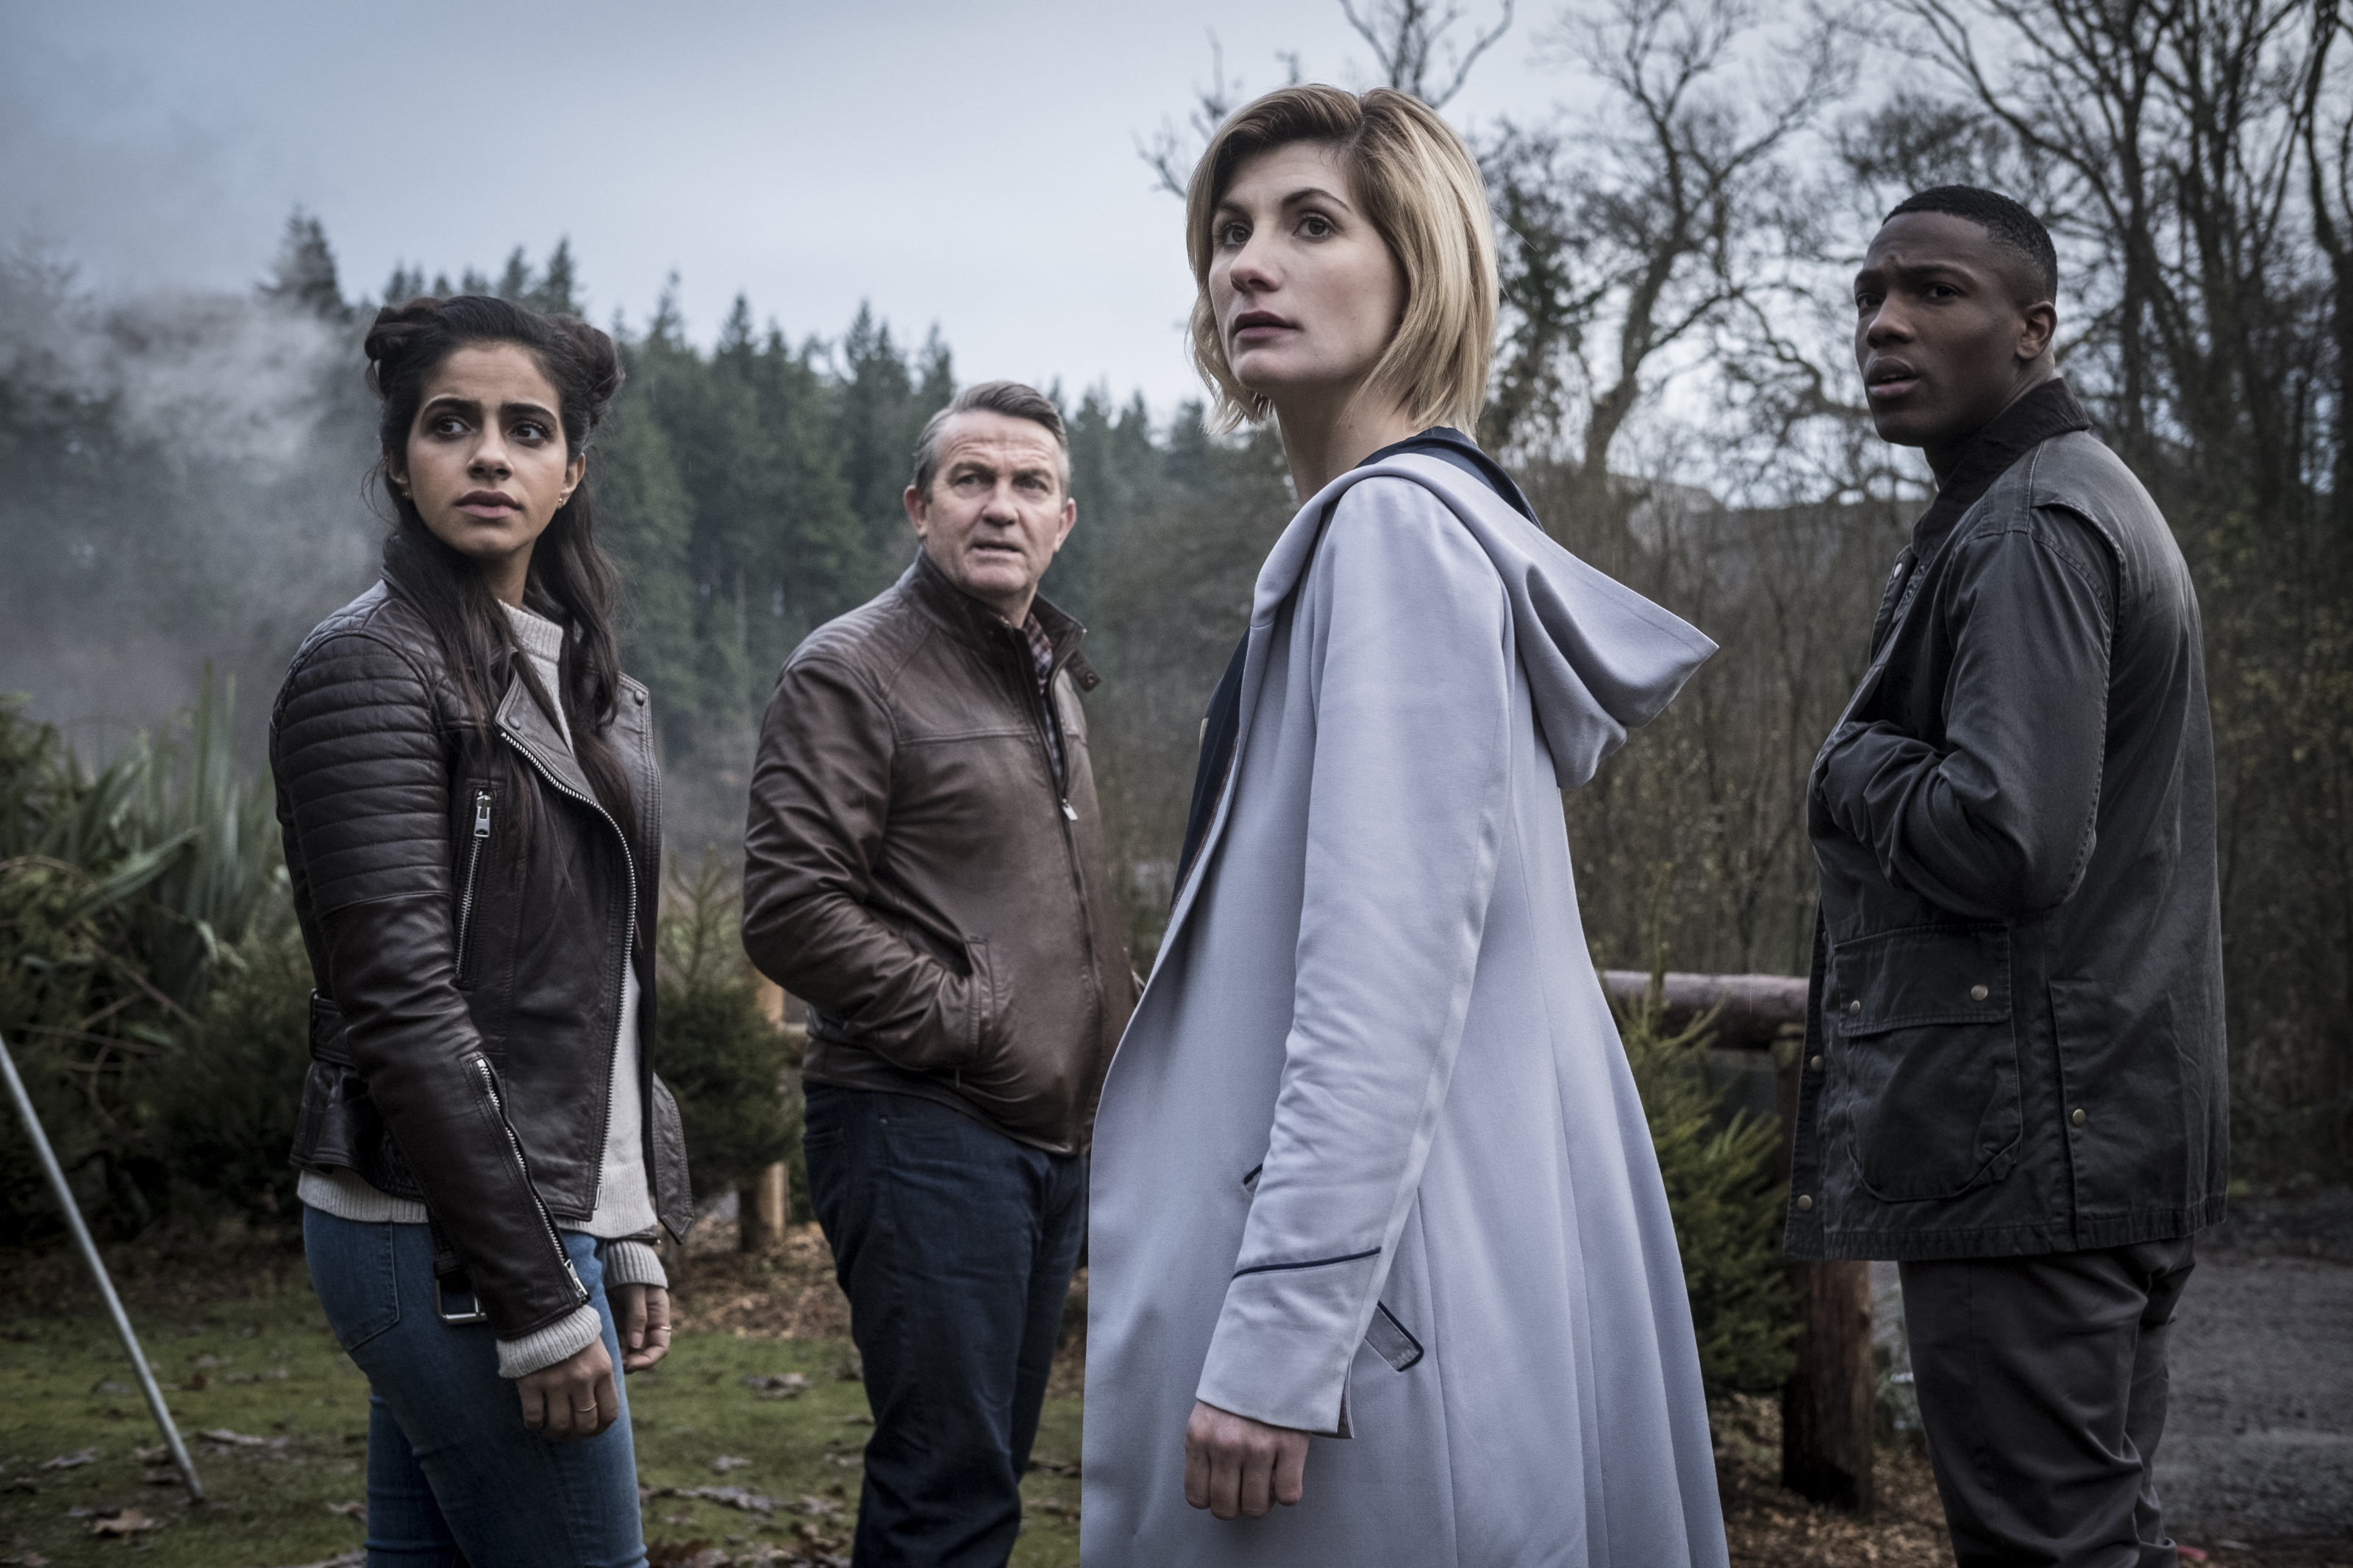 Doctor Who showrunner Chris Chibnall will be back for another season